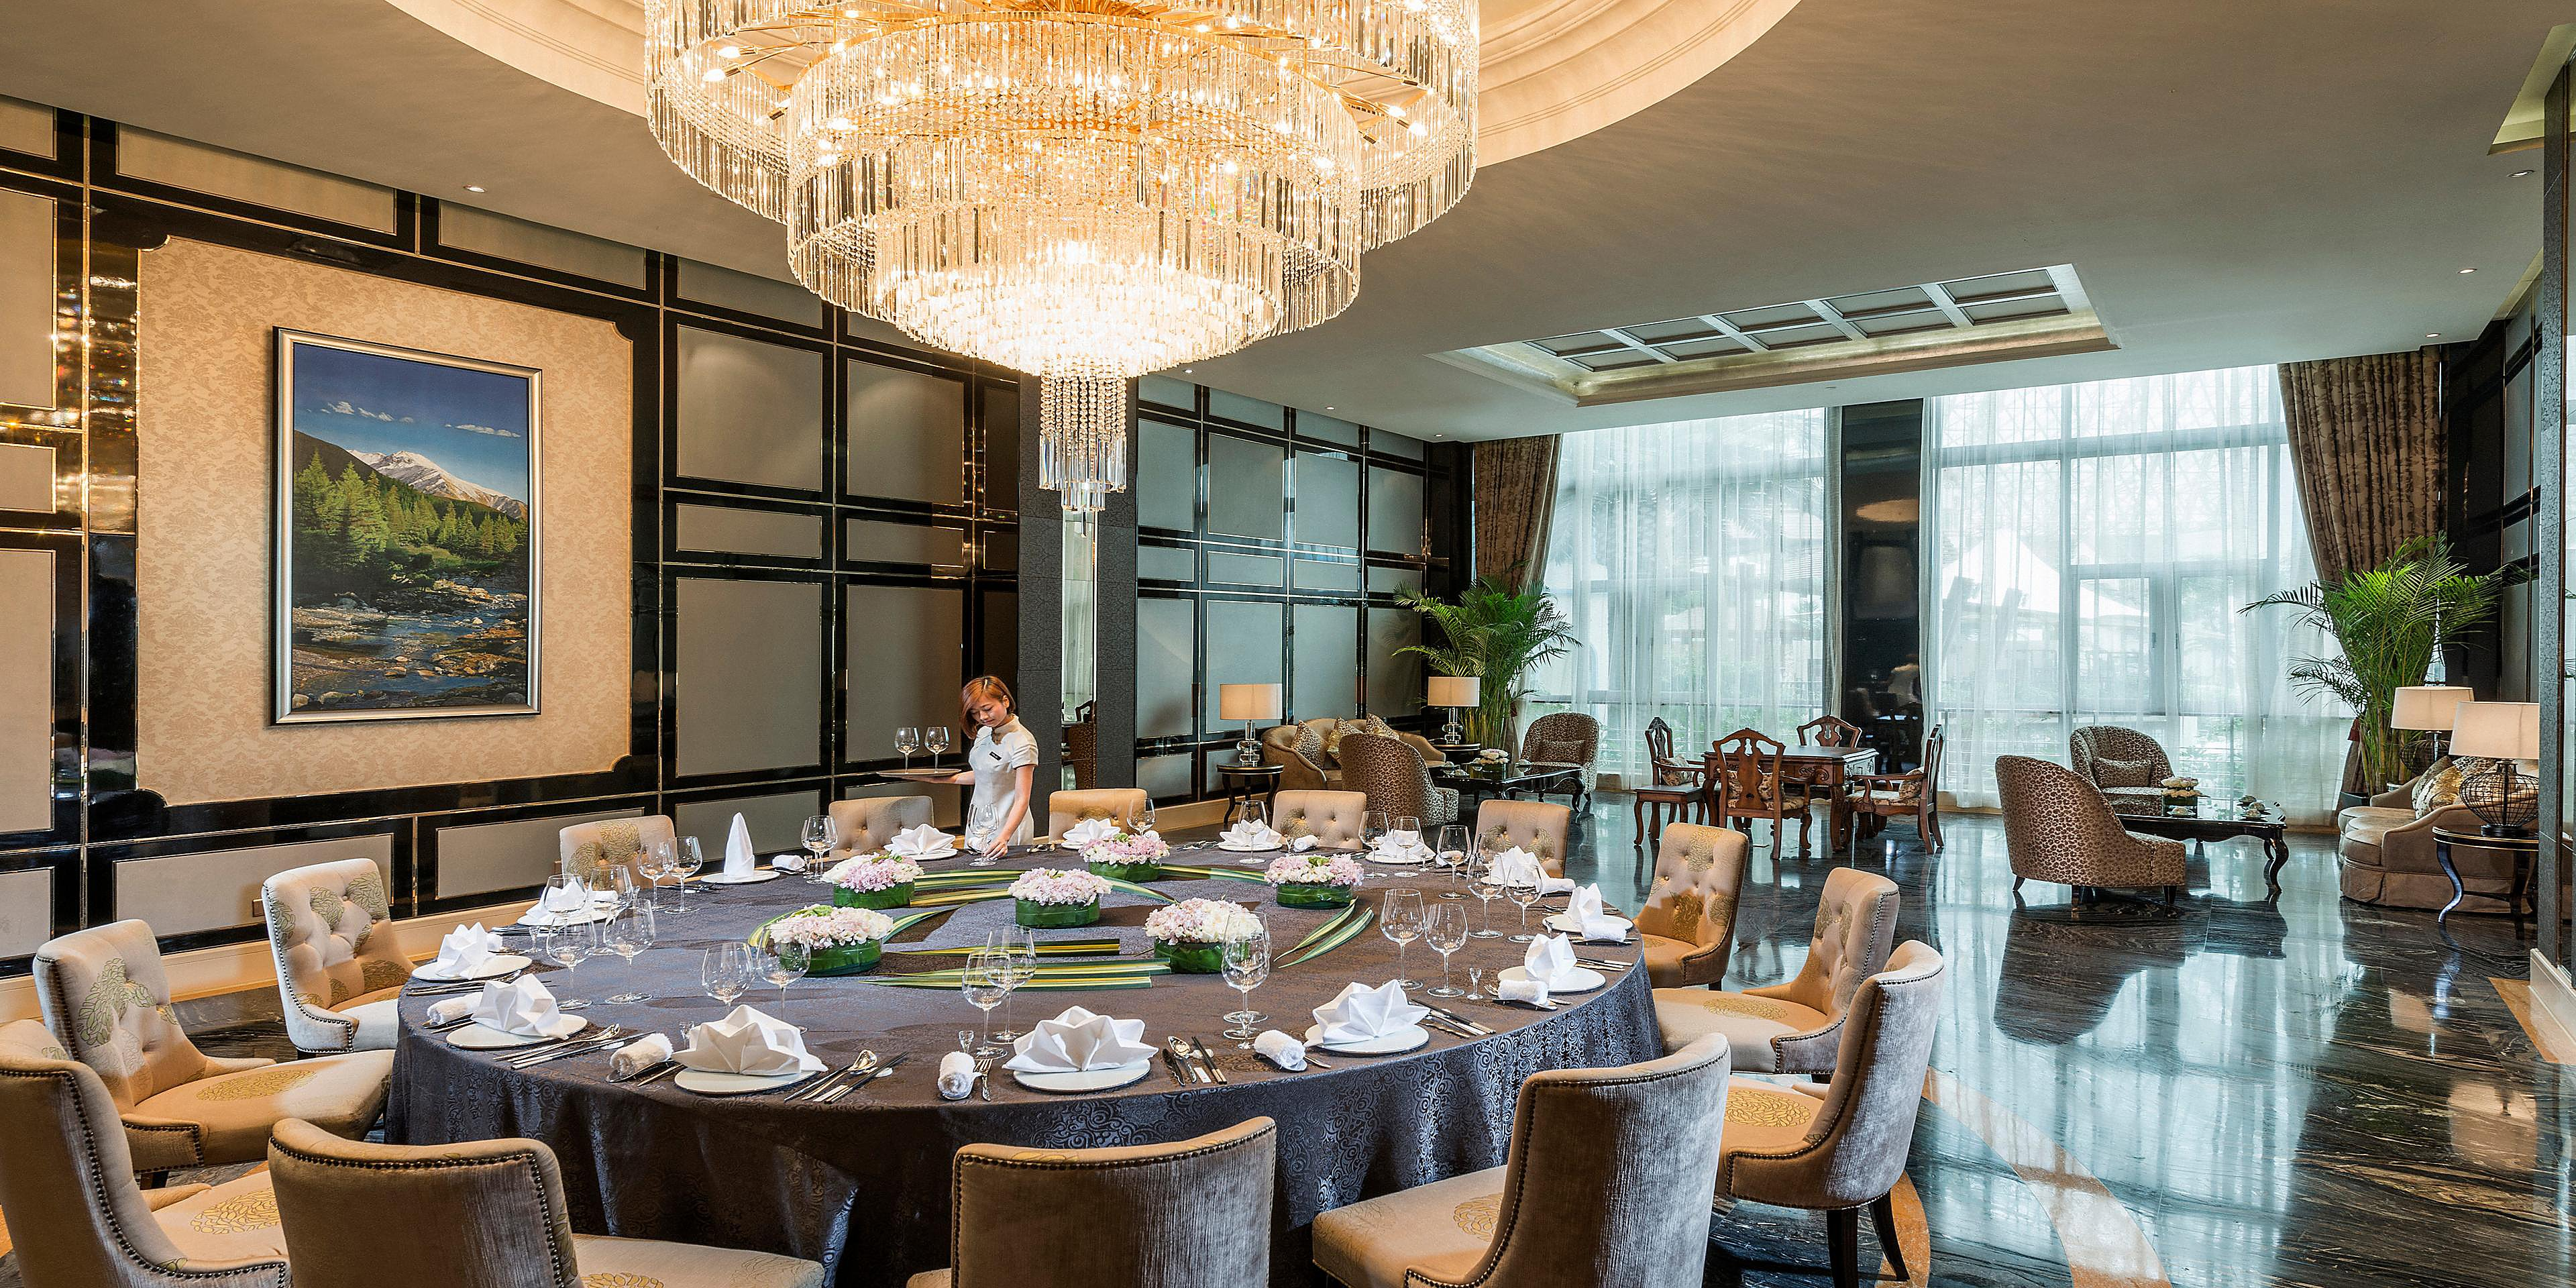 New Century Global Center Hotels Intercontinental Chengdu Global